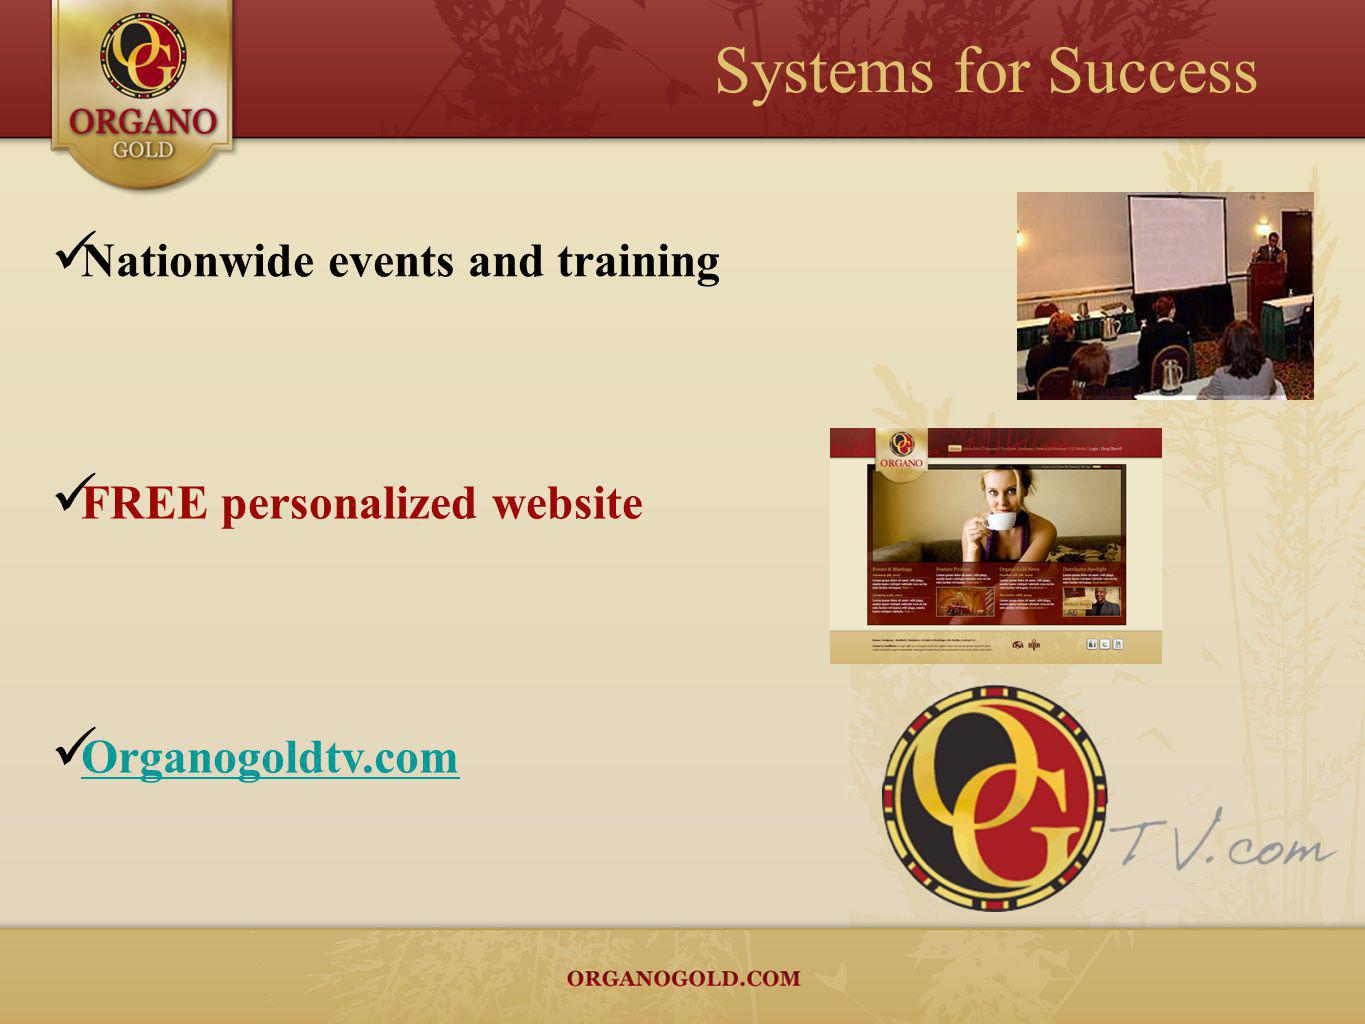 Nationwide events and training FREE personalized website Organogoldtv.com Systems for Success